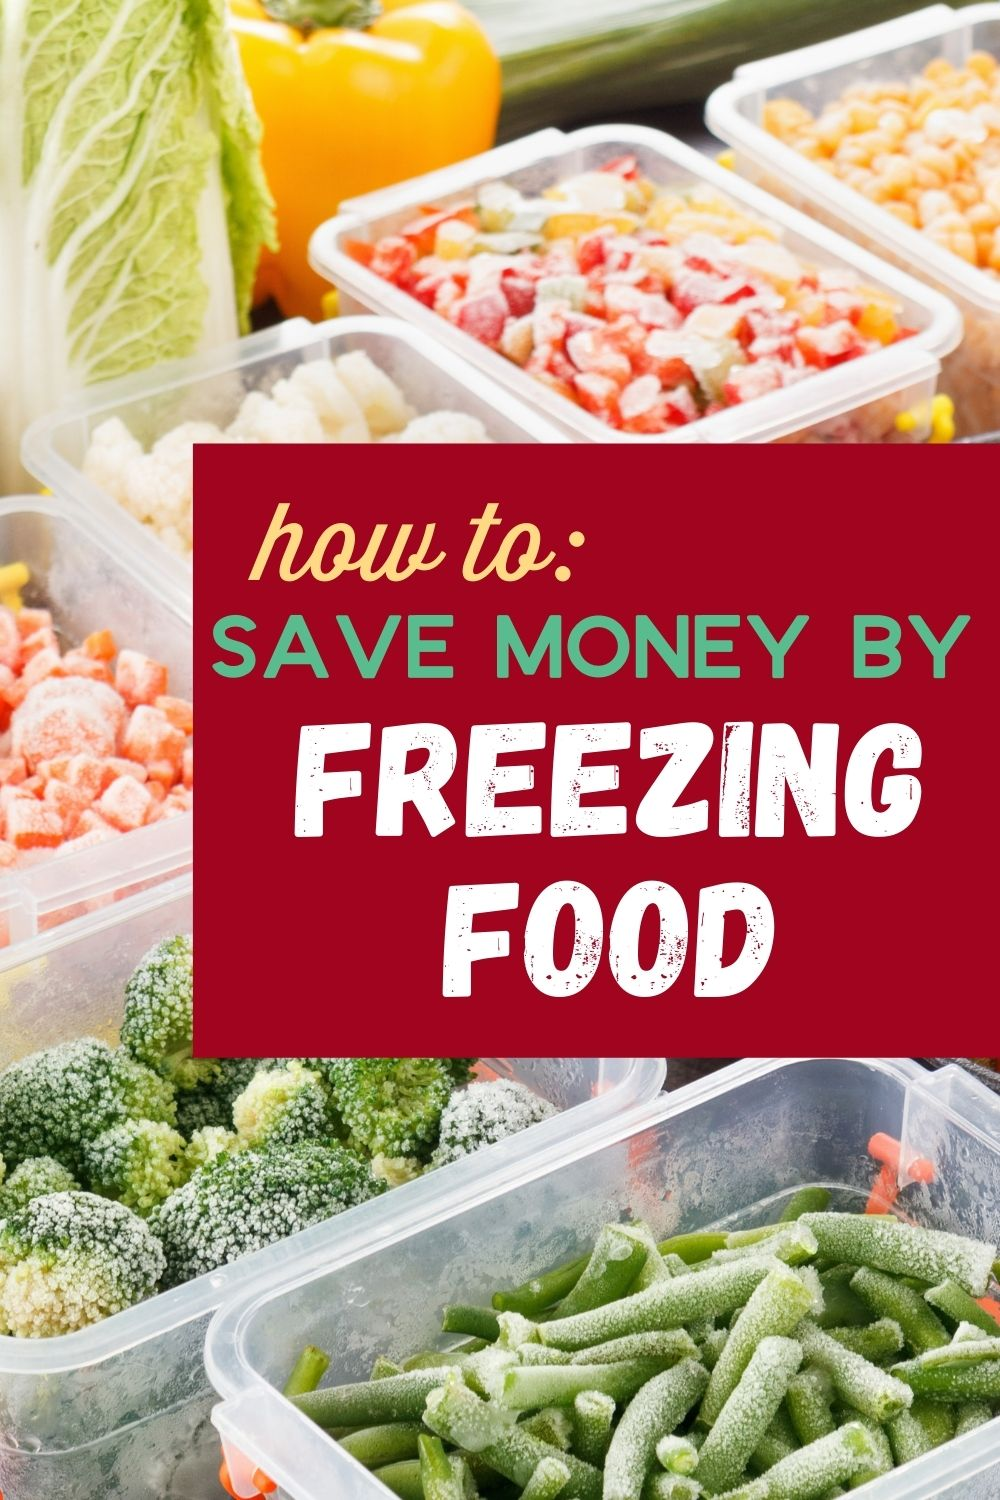 Wondering how to save money by freezing food? Here's a roundup of all the recipes I'll be making soon as well as my best freezer tips!